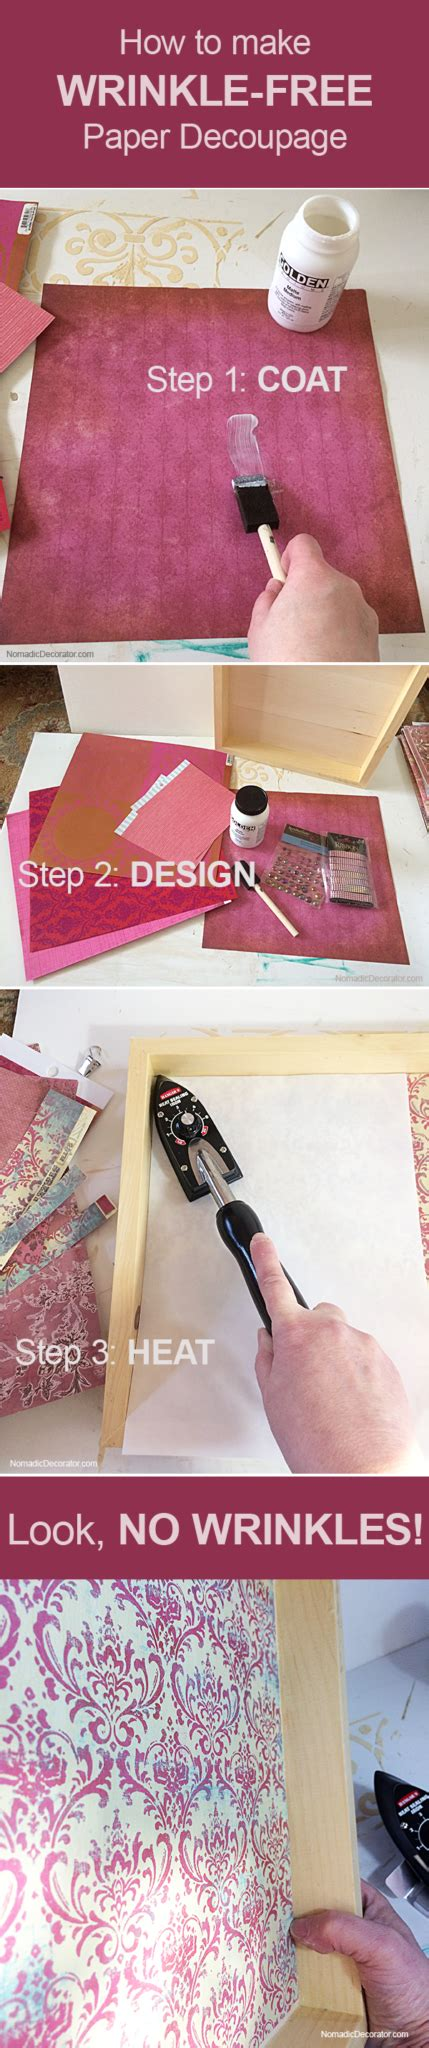 how to make decoupage medium diy tutorial how to make wrinkle free paper decoupage